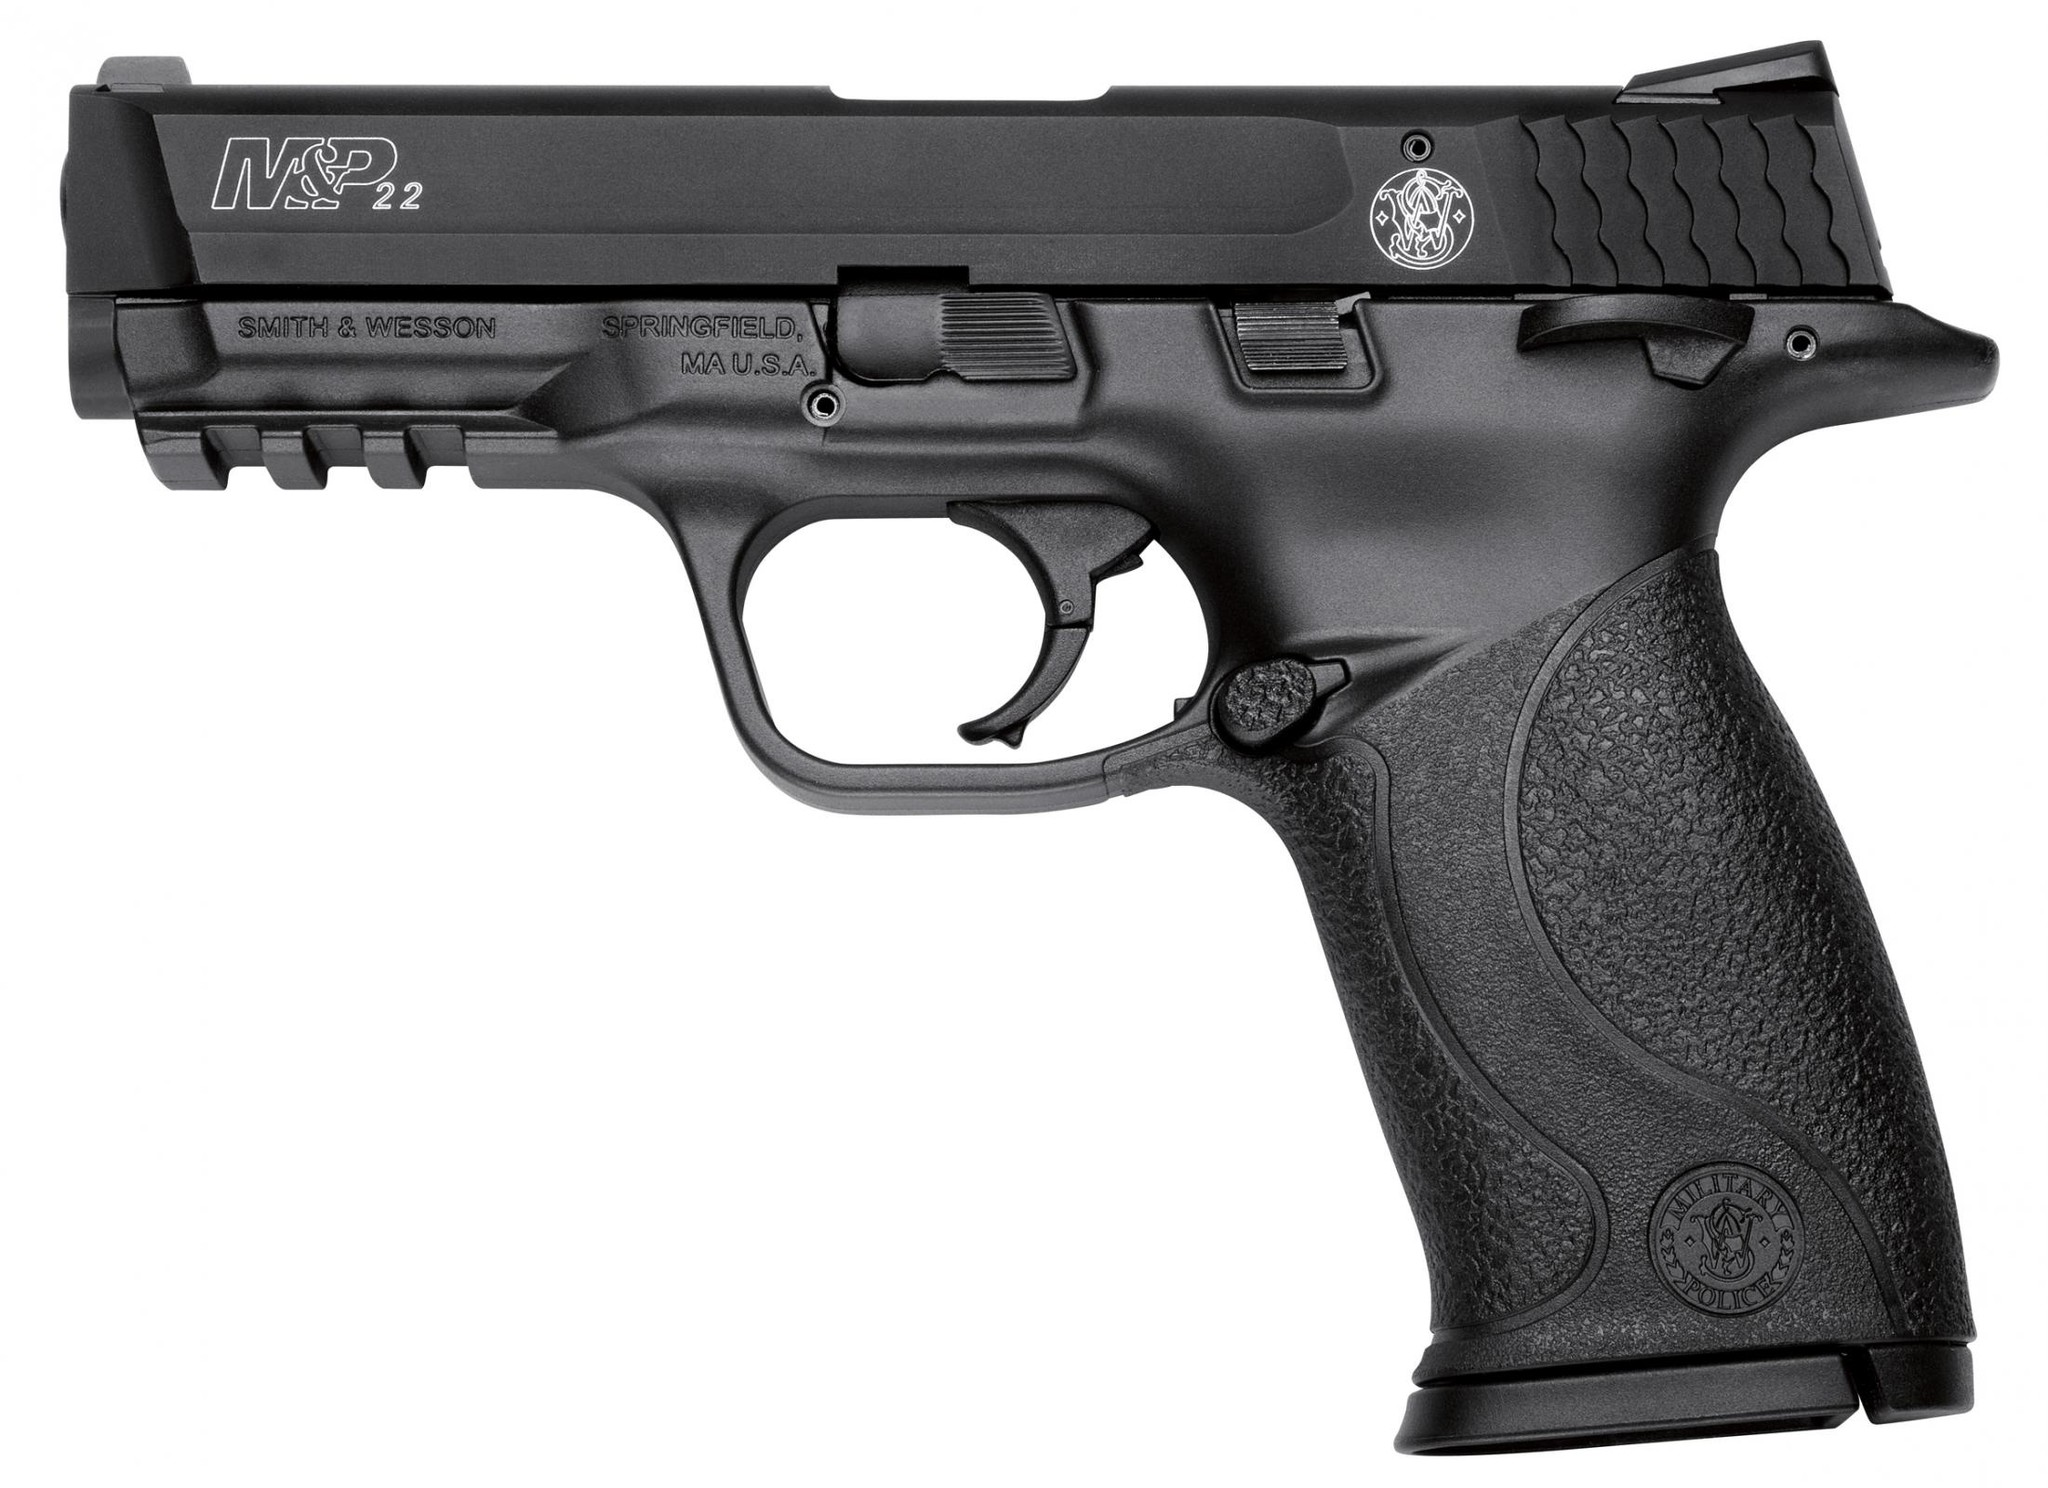 Smith & Wesson Smith & Wesson M&P22 .22LR